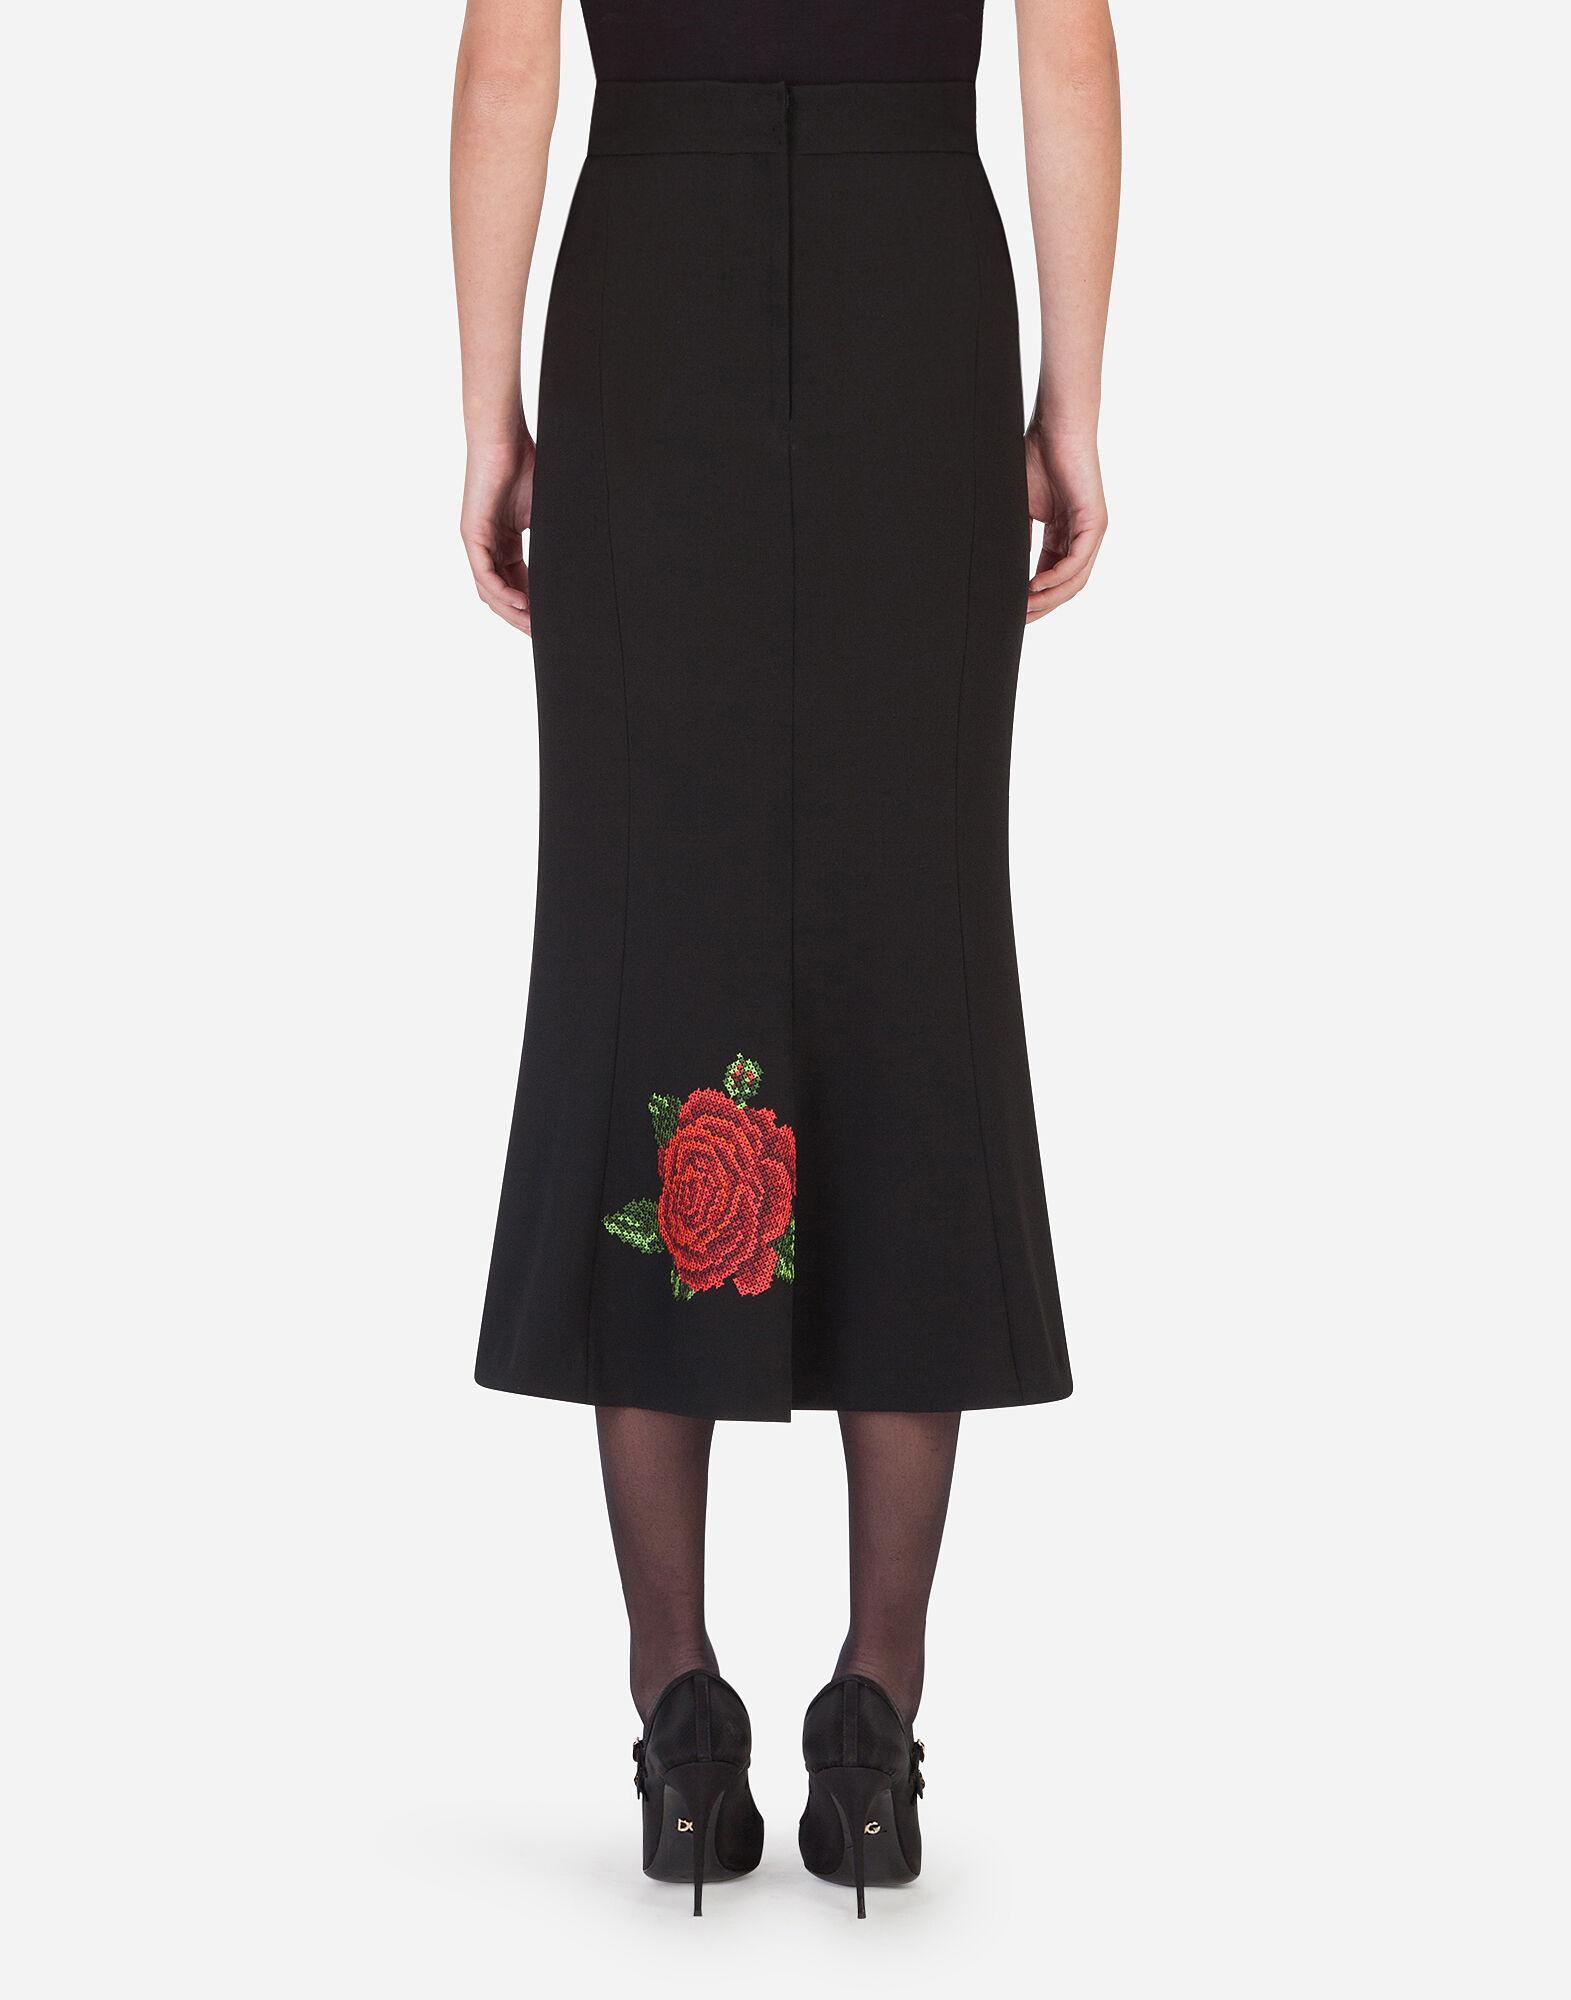 Pencil skirt with rose embroidery 1